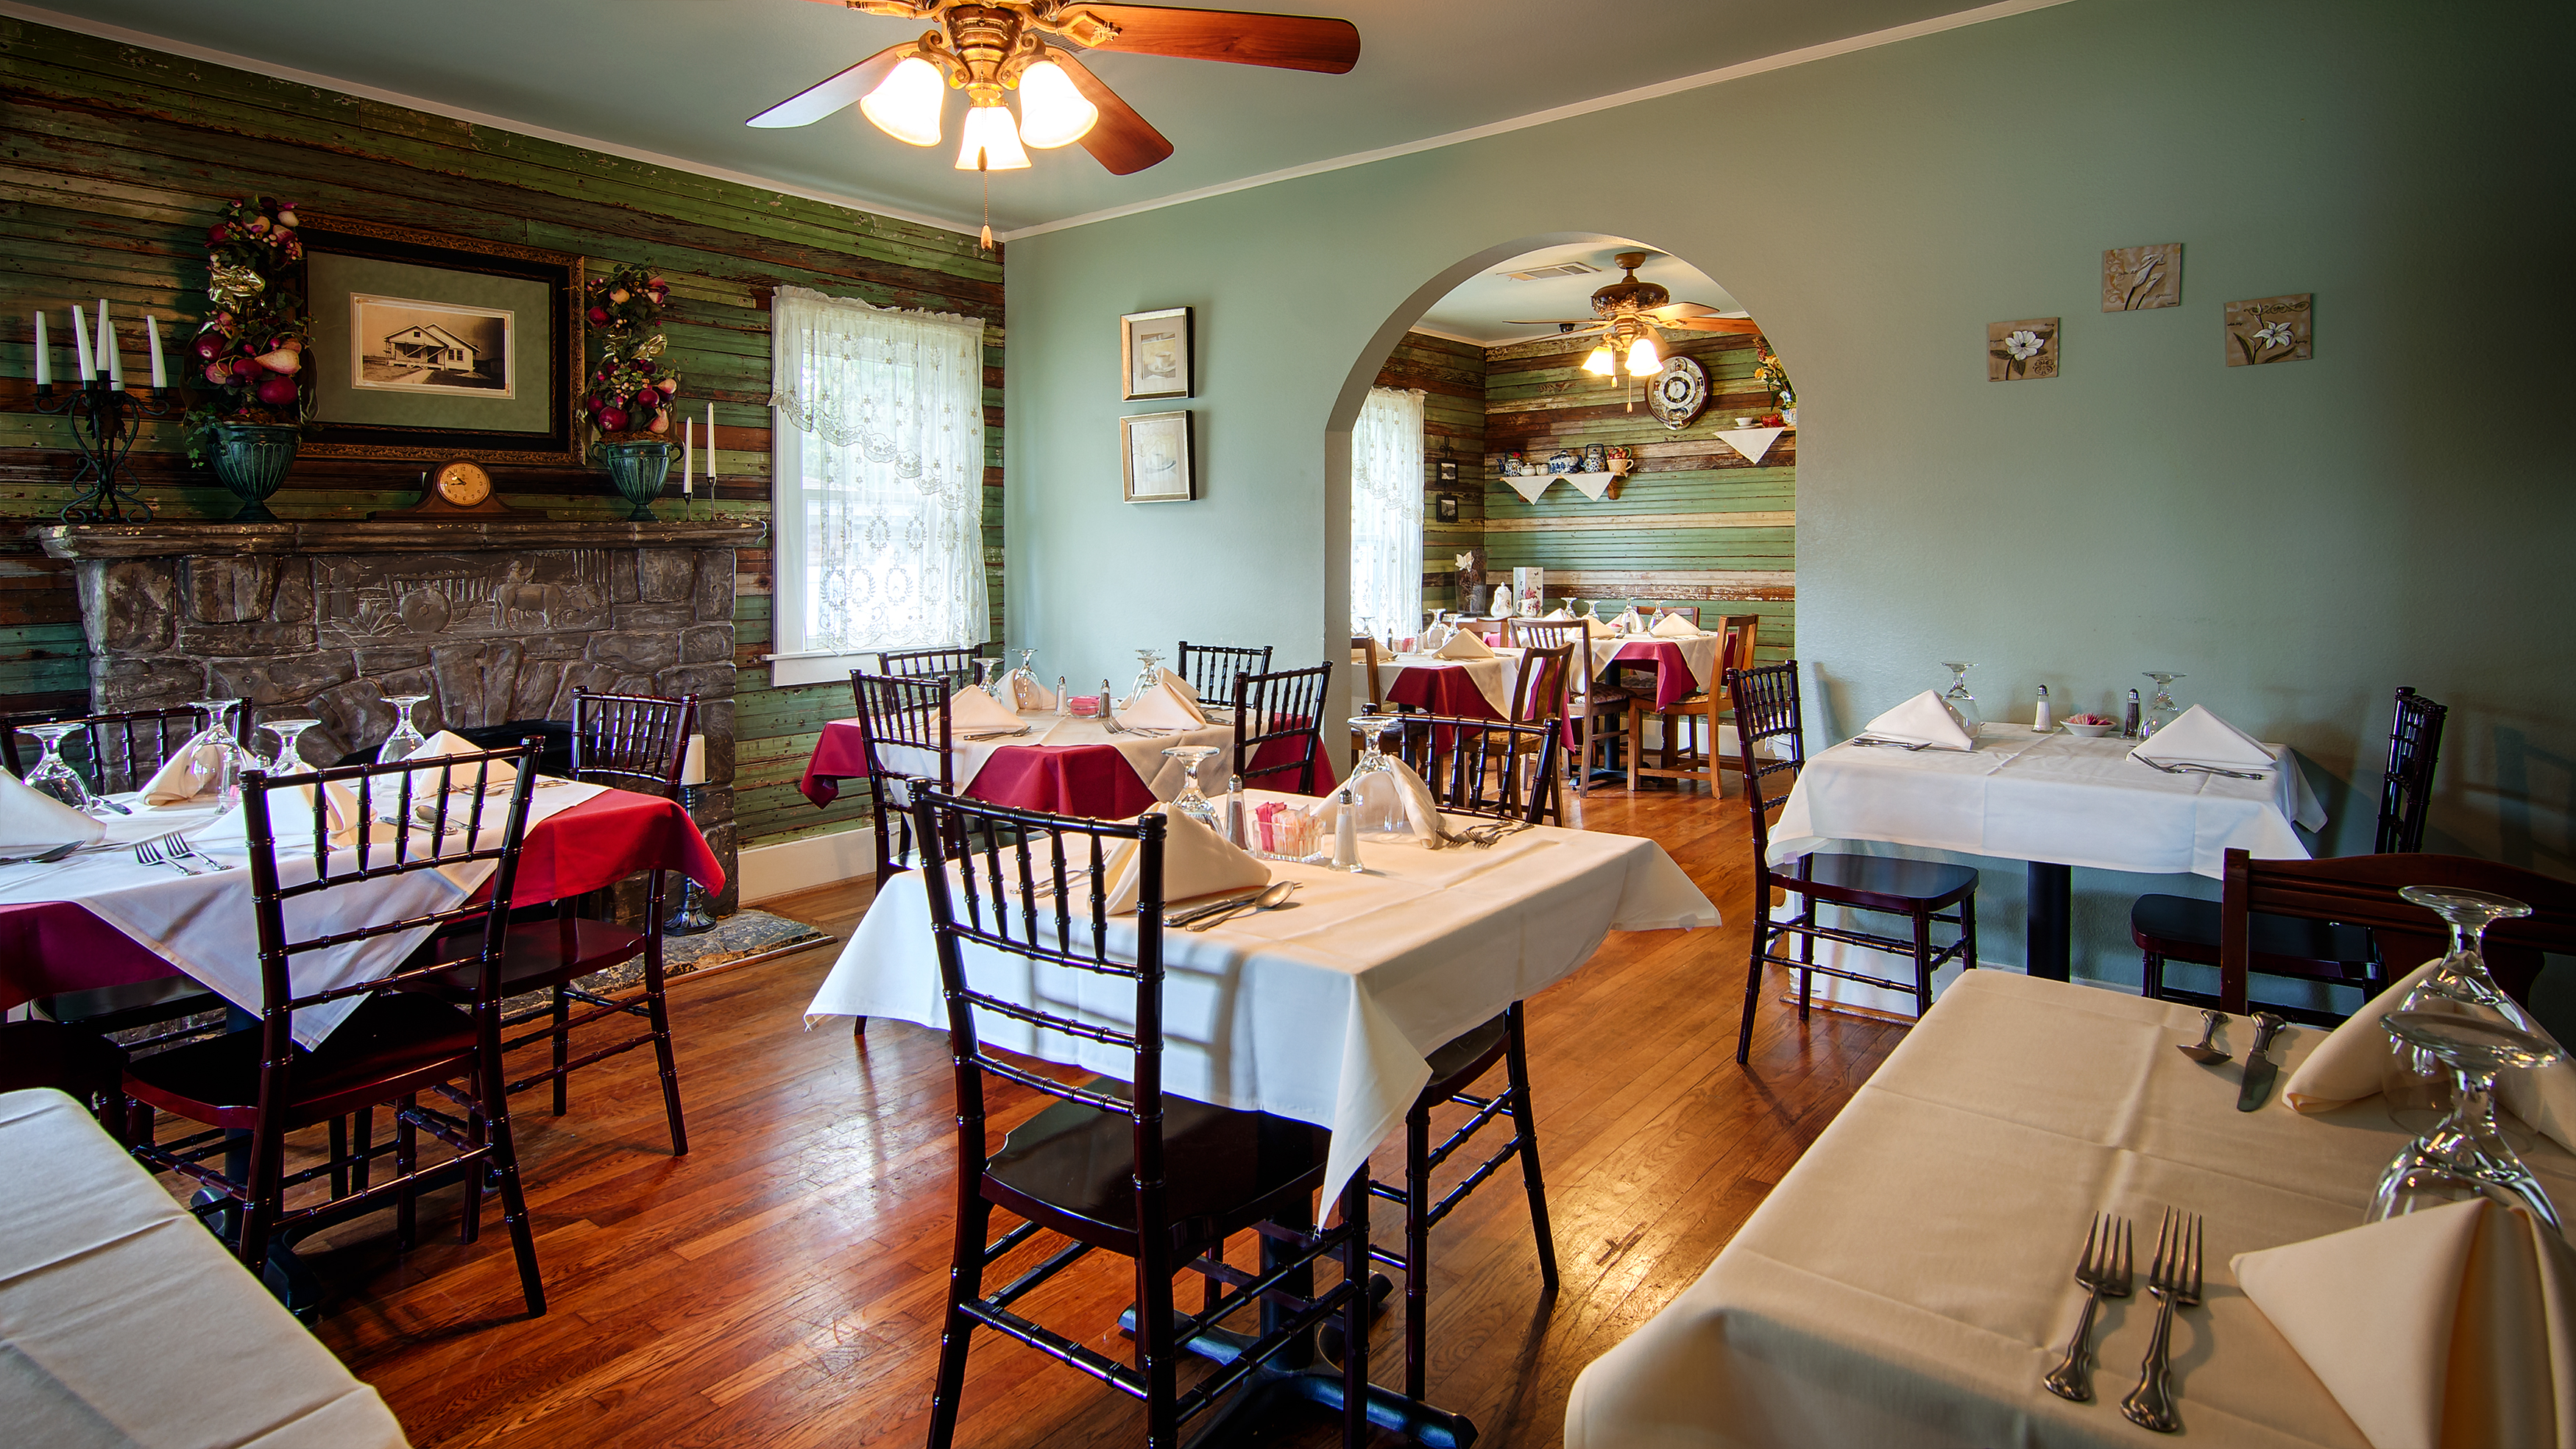 delicious restaurant & tearoom featuring a mouthwatering menu!